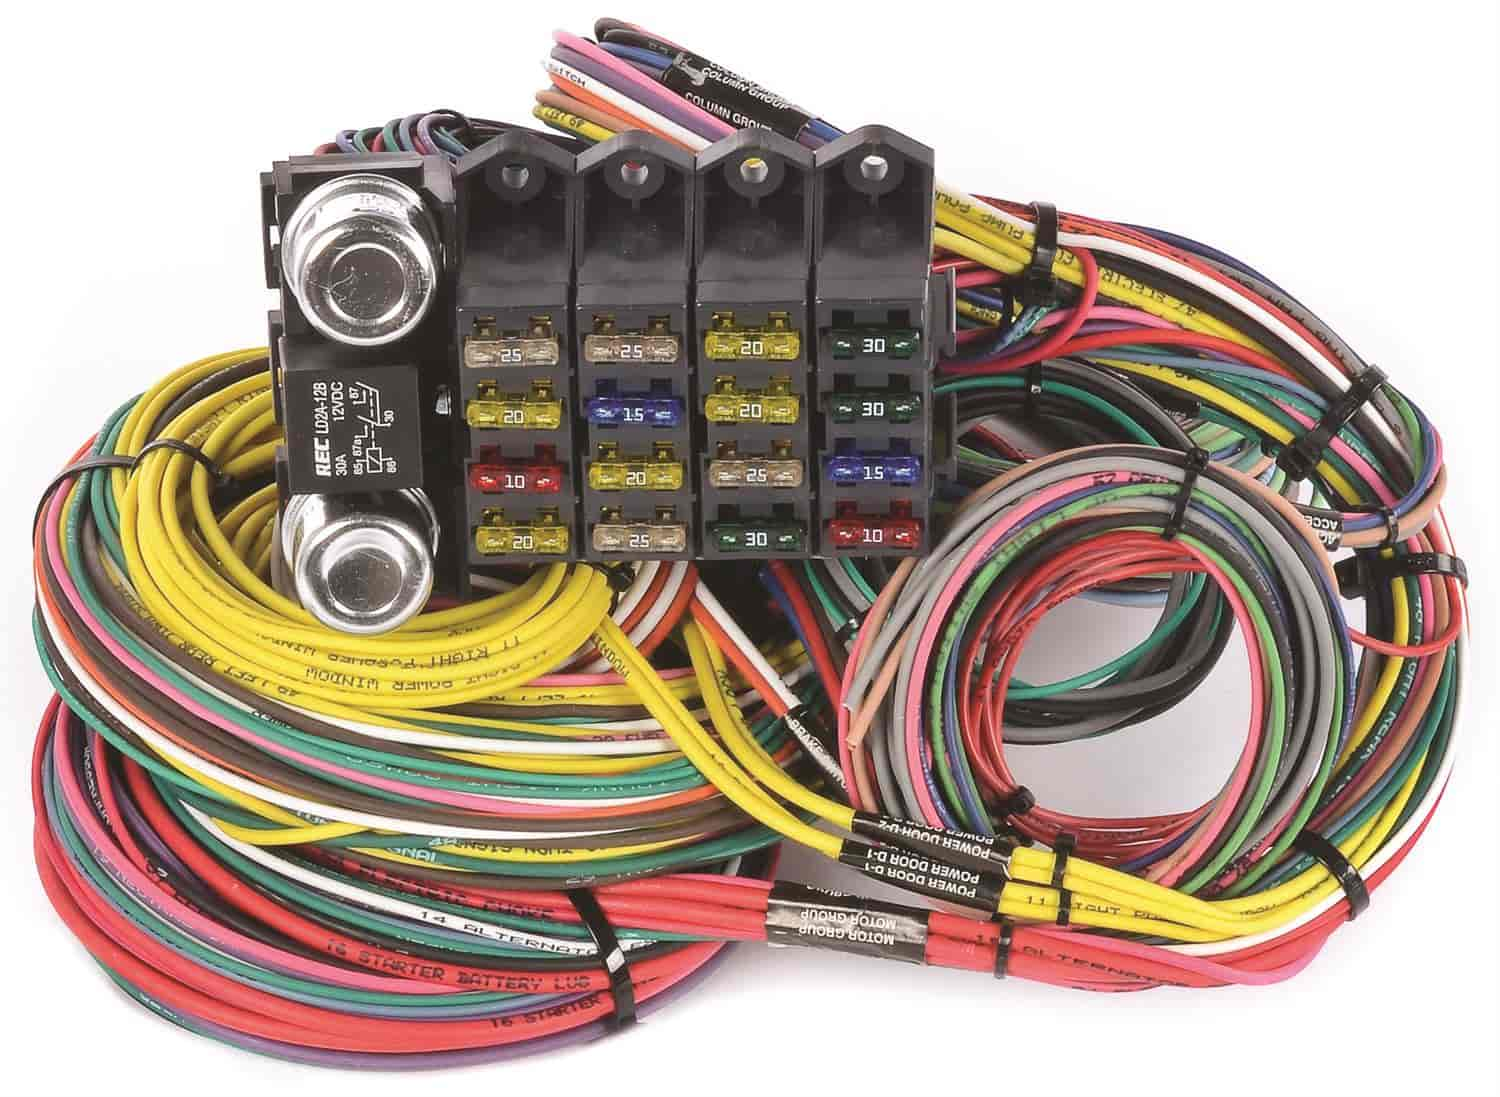 555 10405 jegs performance products 10405 universal wiring harness, 20 jegs universal wiring harness at readyjetset.co